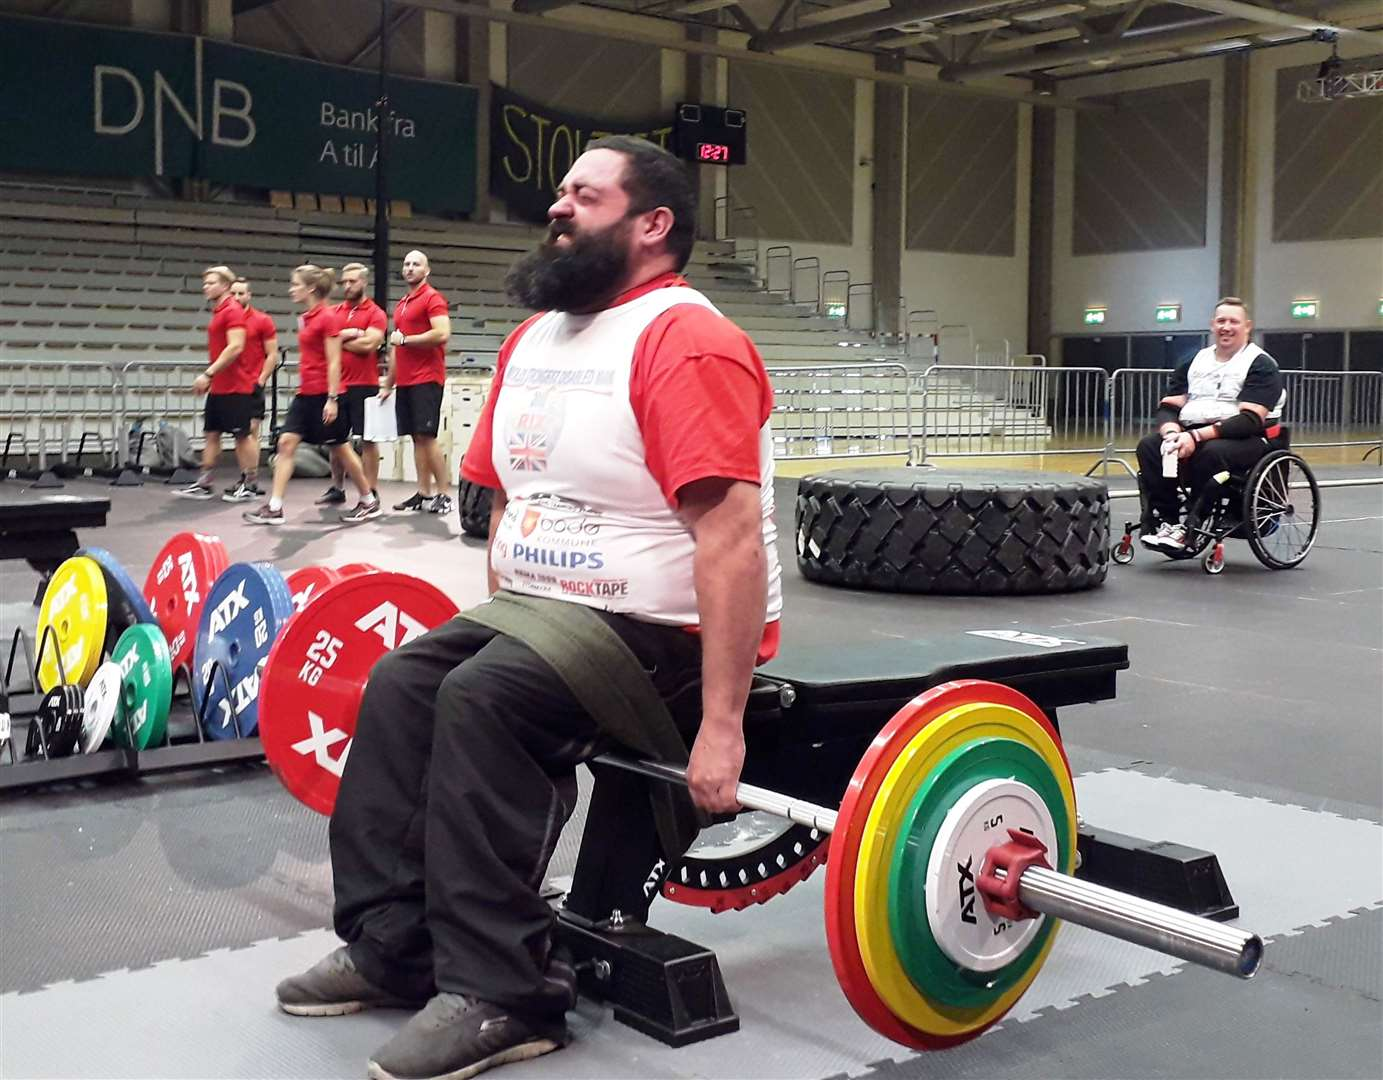 Chris Rix setting a pb in the seated deadlift at Bodo 2018 (8385577)